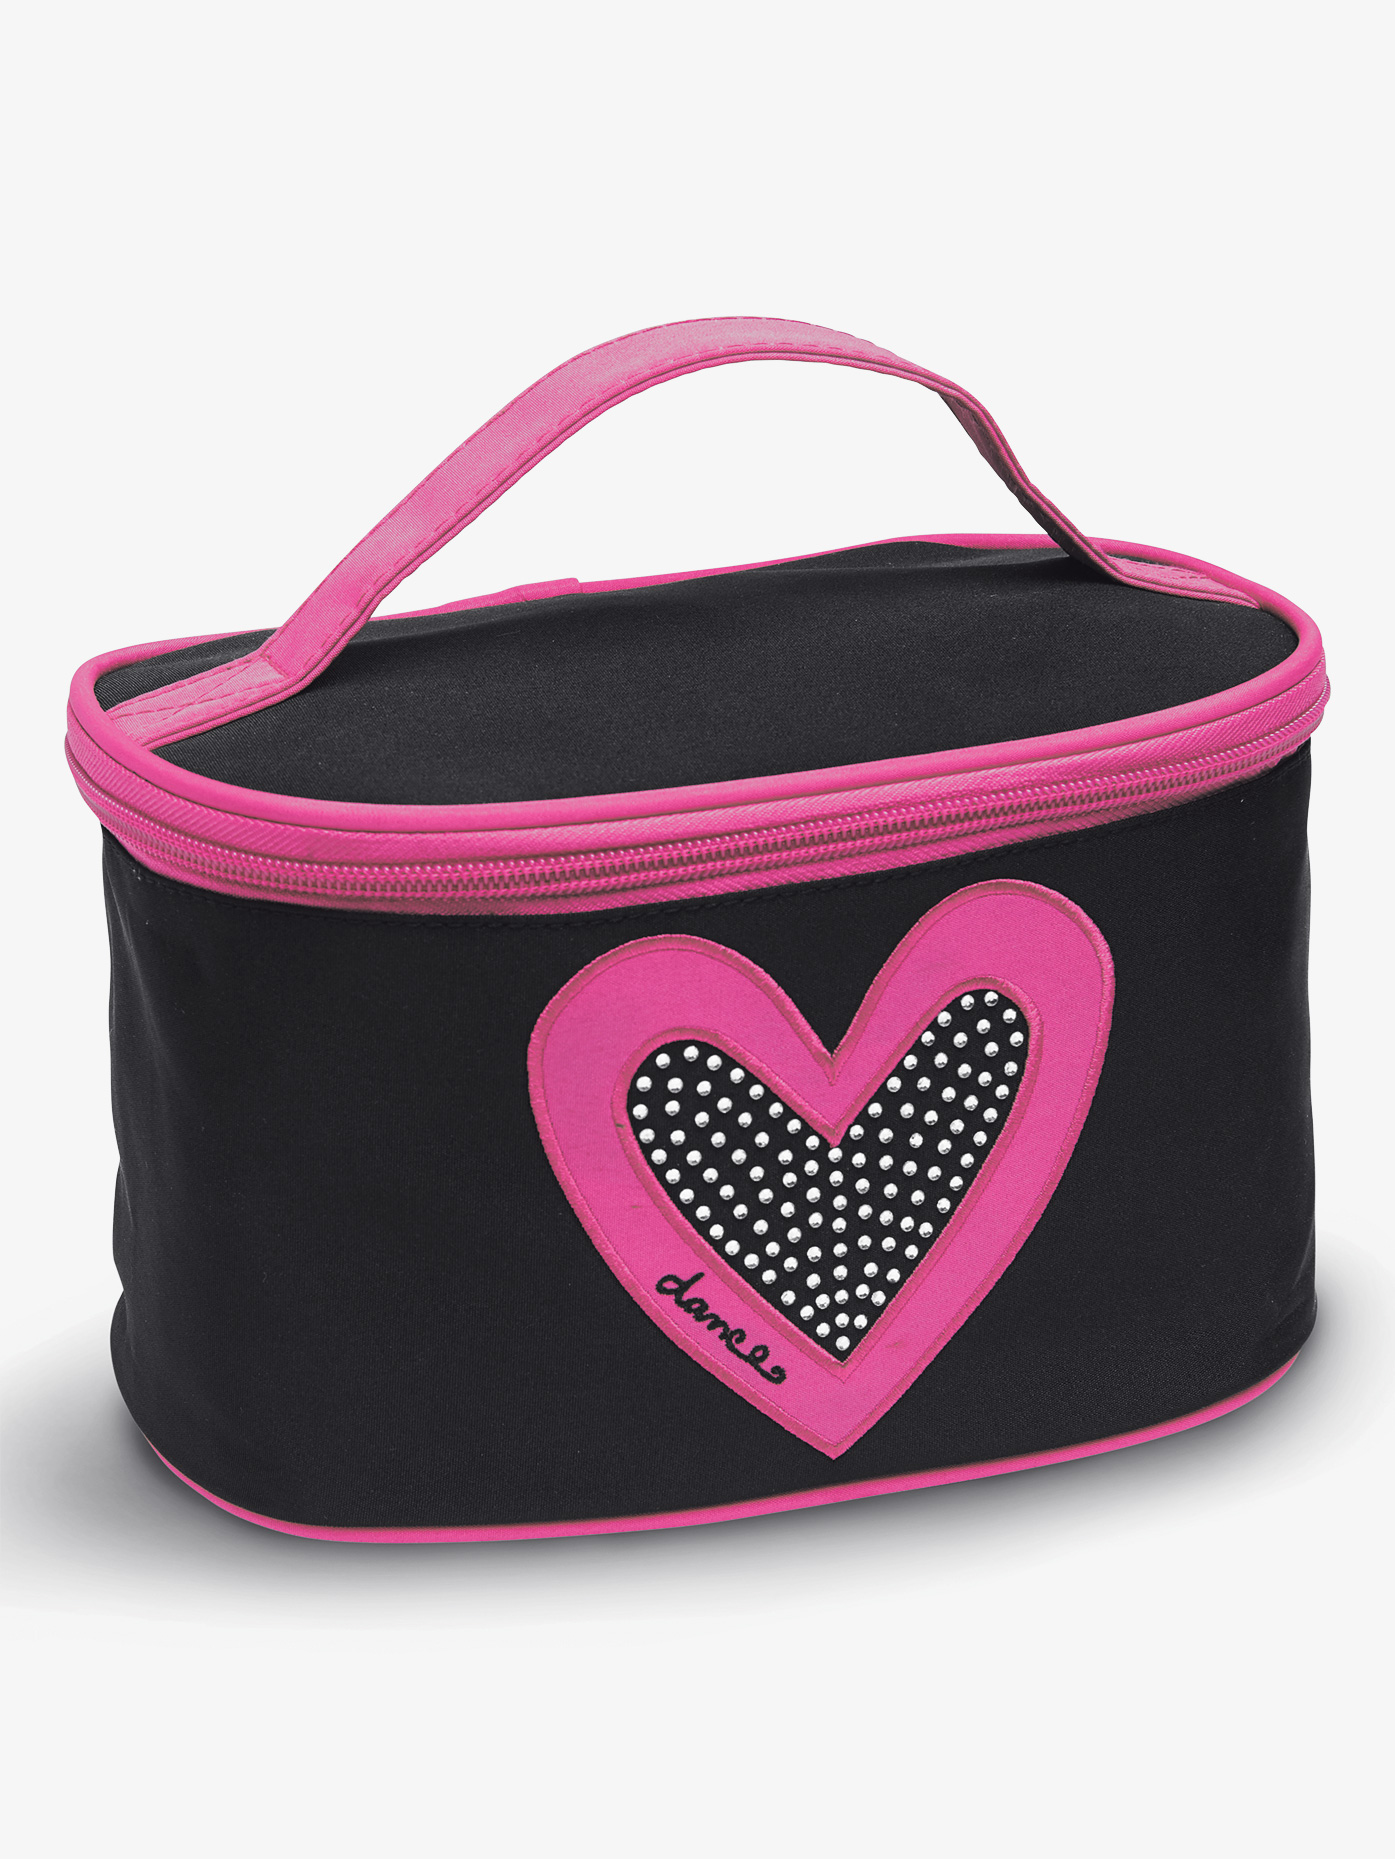 DansBagz I Heart Makeup Case B472BKHP